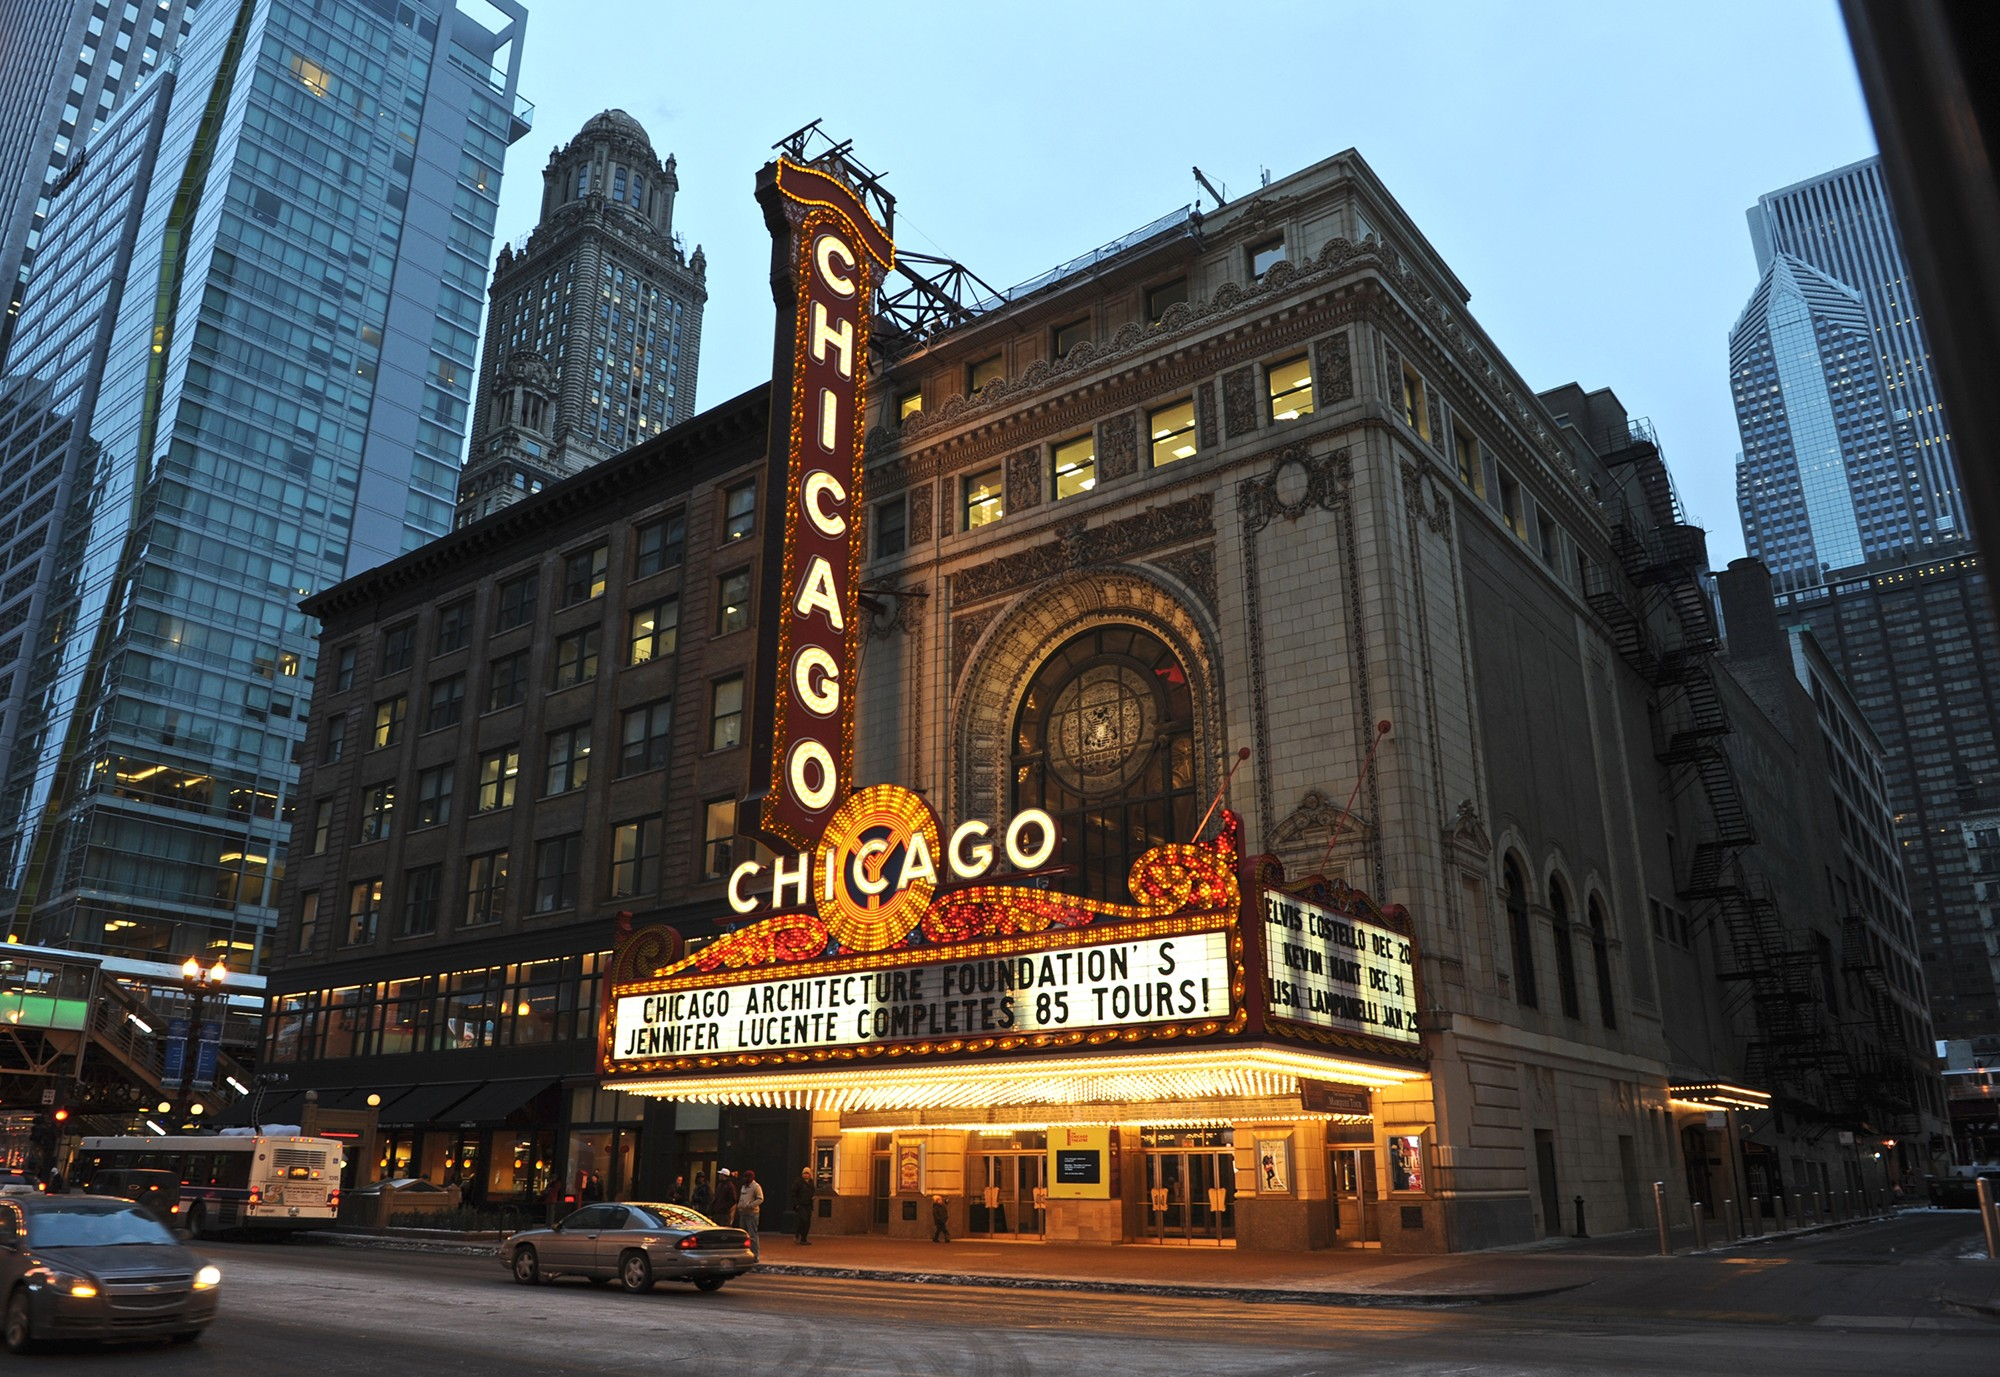 Amazing shops in Chicago that you can't miss travel destinations 5 Luxury Travel Destinations That Are Trending This Year cover1 travel destinations 5 Luxury Travel Destinations That Are Trending This Year cover1